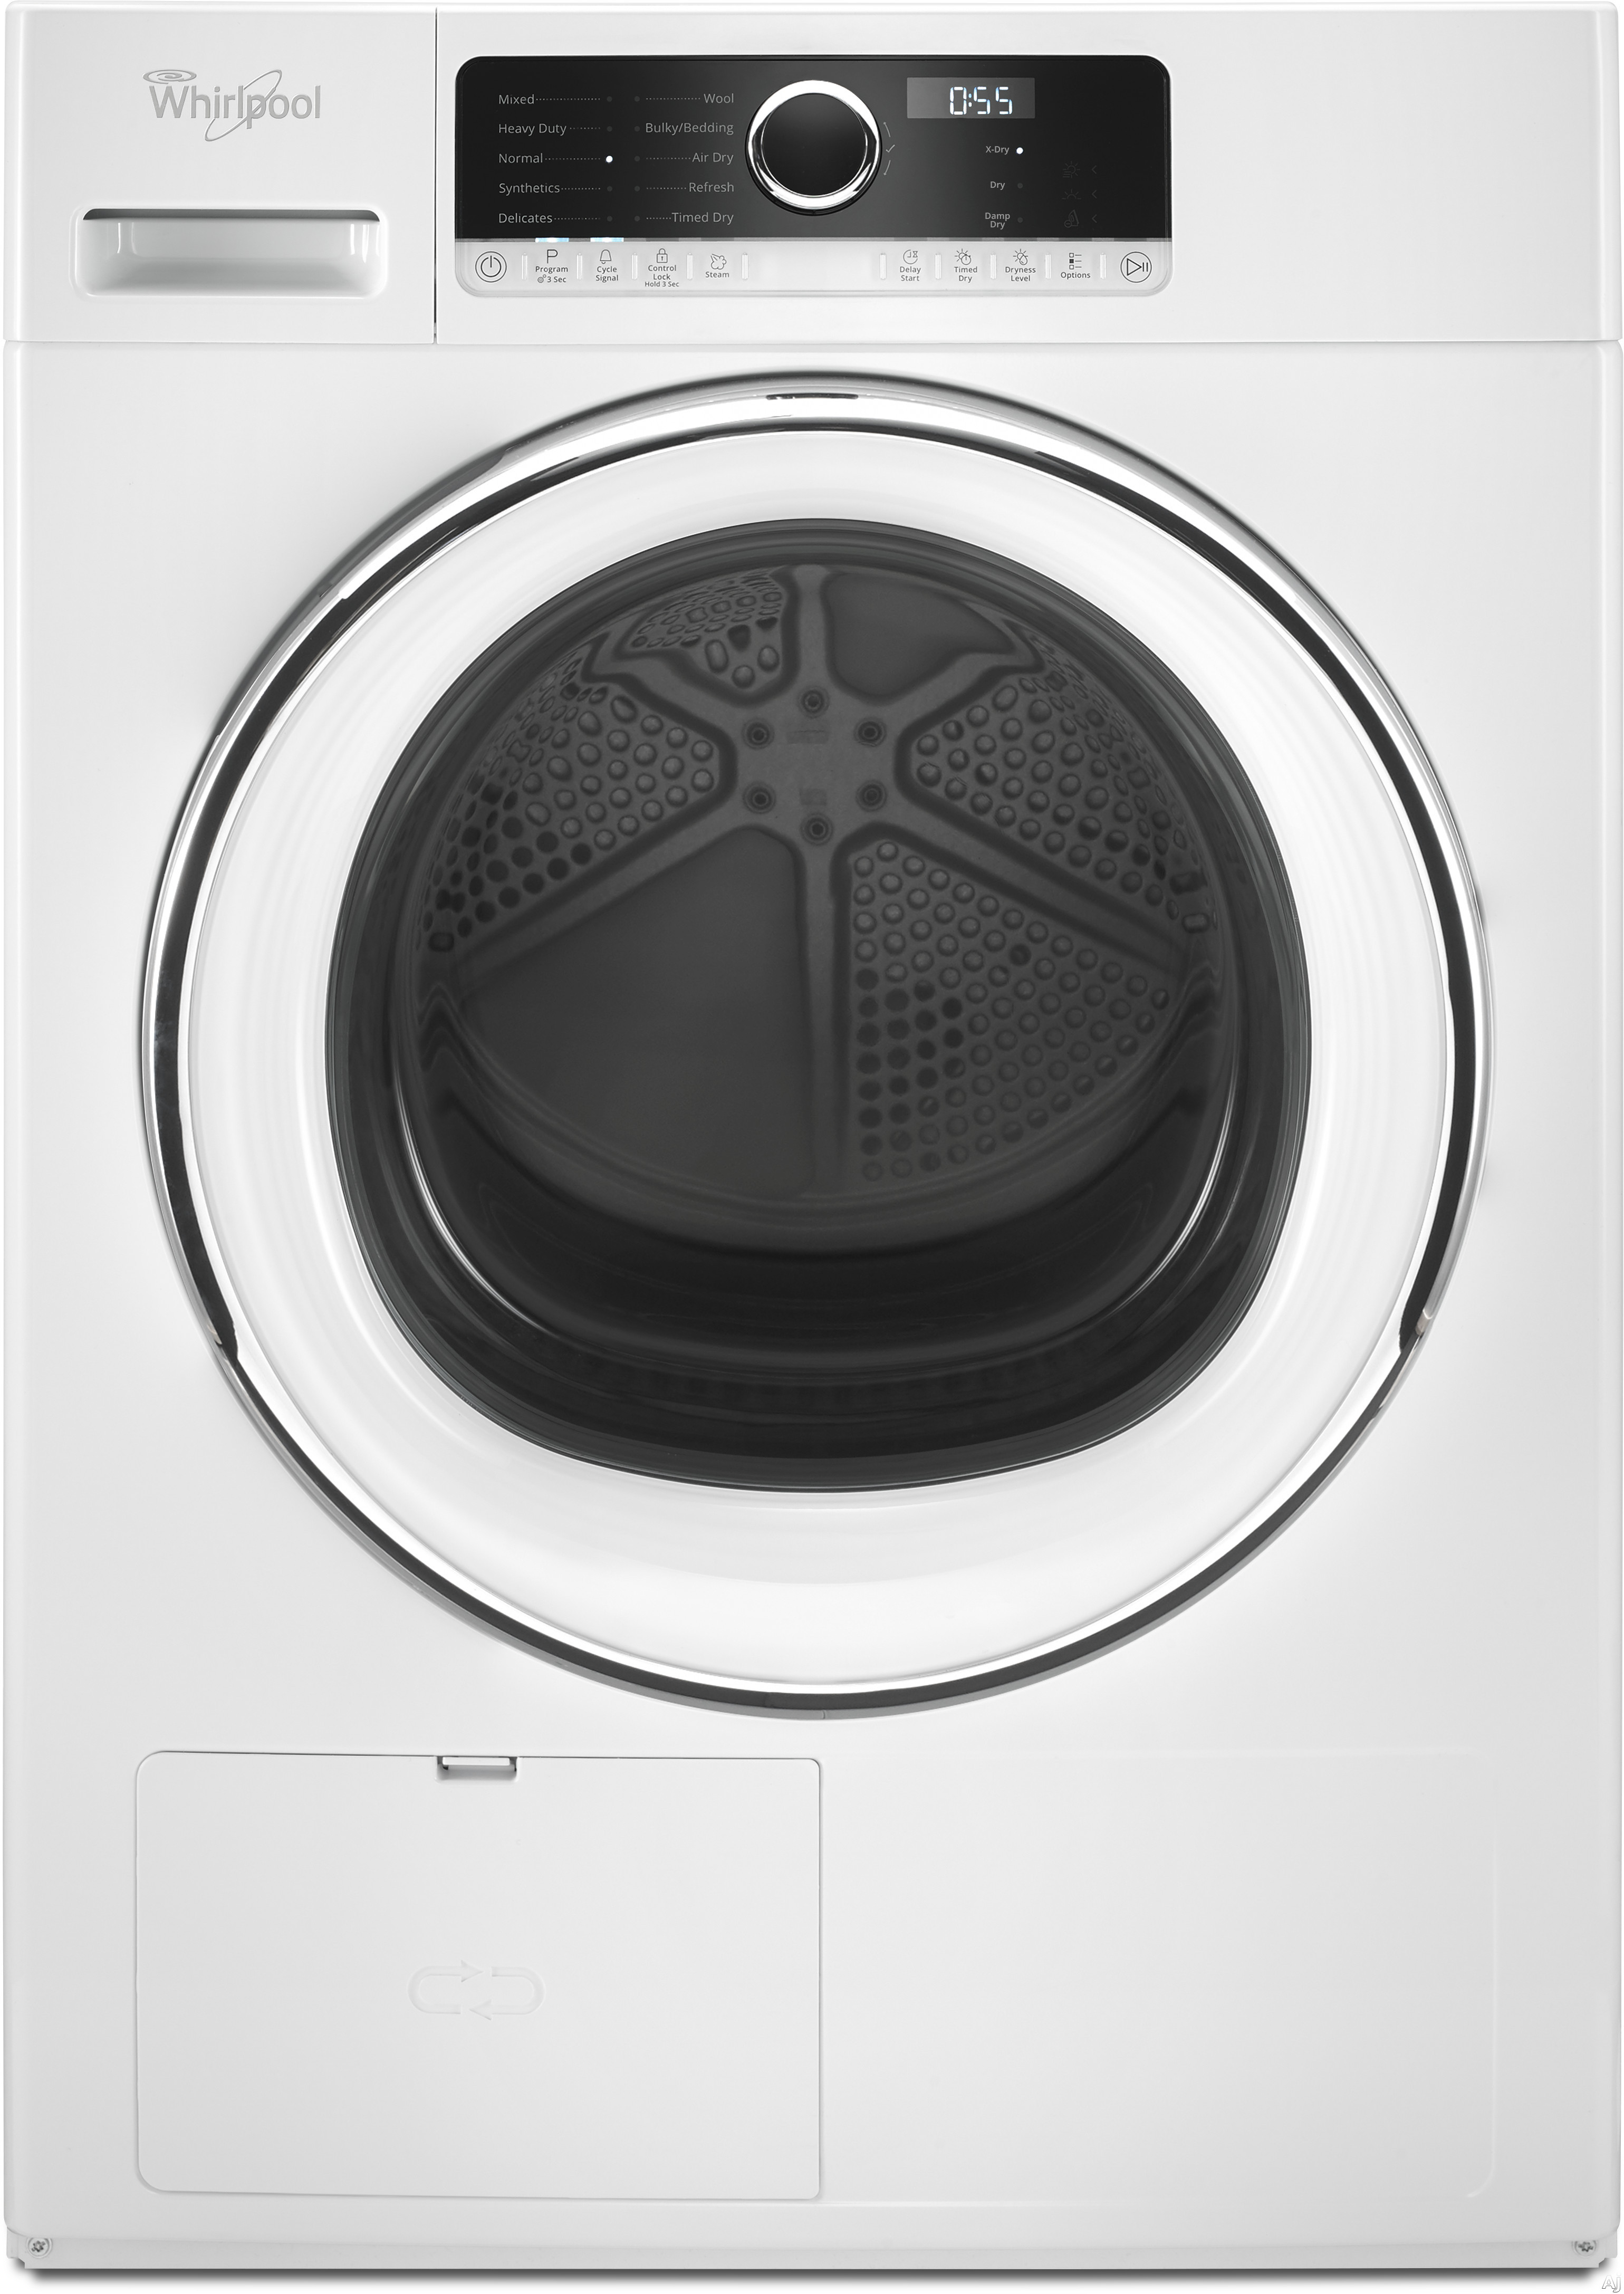 Whirlpool WHD5090GW 24 Inch 4.3 cu. ft. True Ventless Heat Pump Compact Dryer with Wrinkle Shield, Refresh Cycle, ENERGY STAR, Bulky Bedding Cycle, Air Dry Cycle, Wool Cycle, Gentle Dry, Quick X-Dry Cycle and Stackable Design